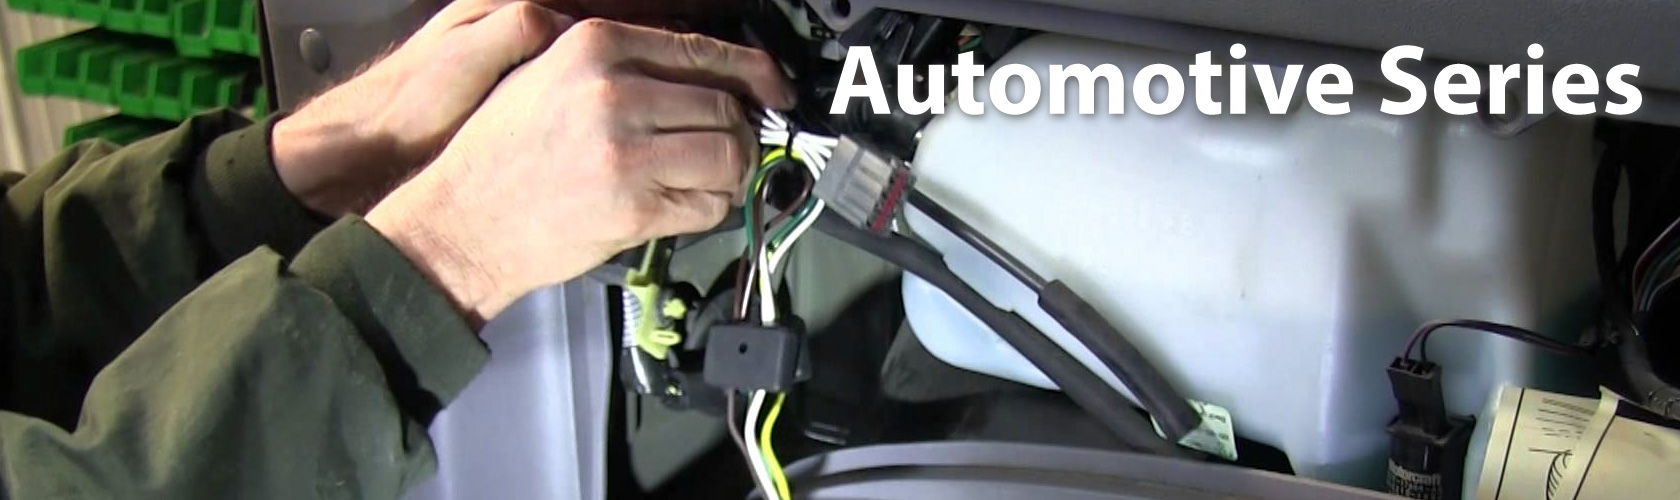 hight resolution of automotive wiring harnes maker